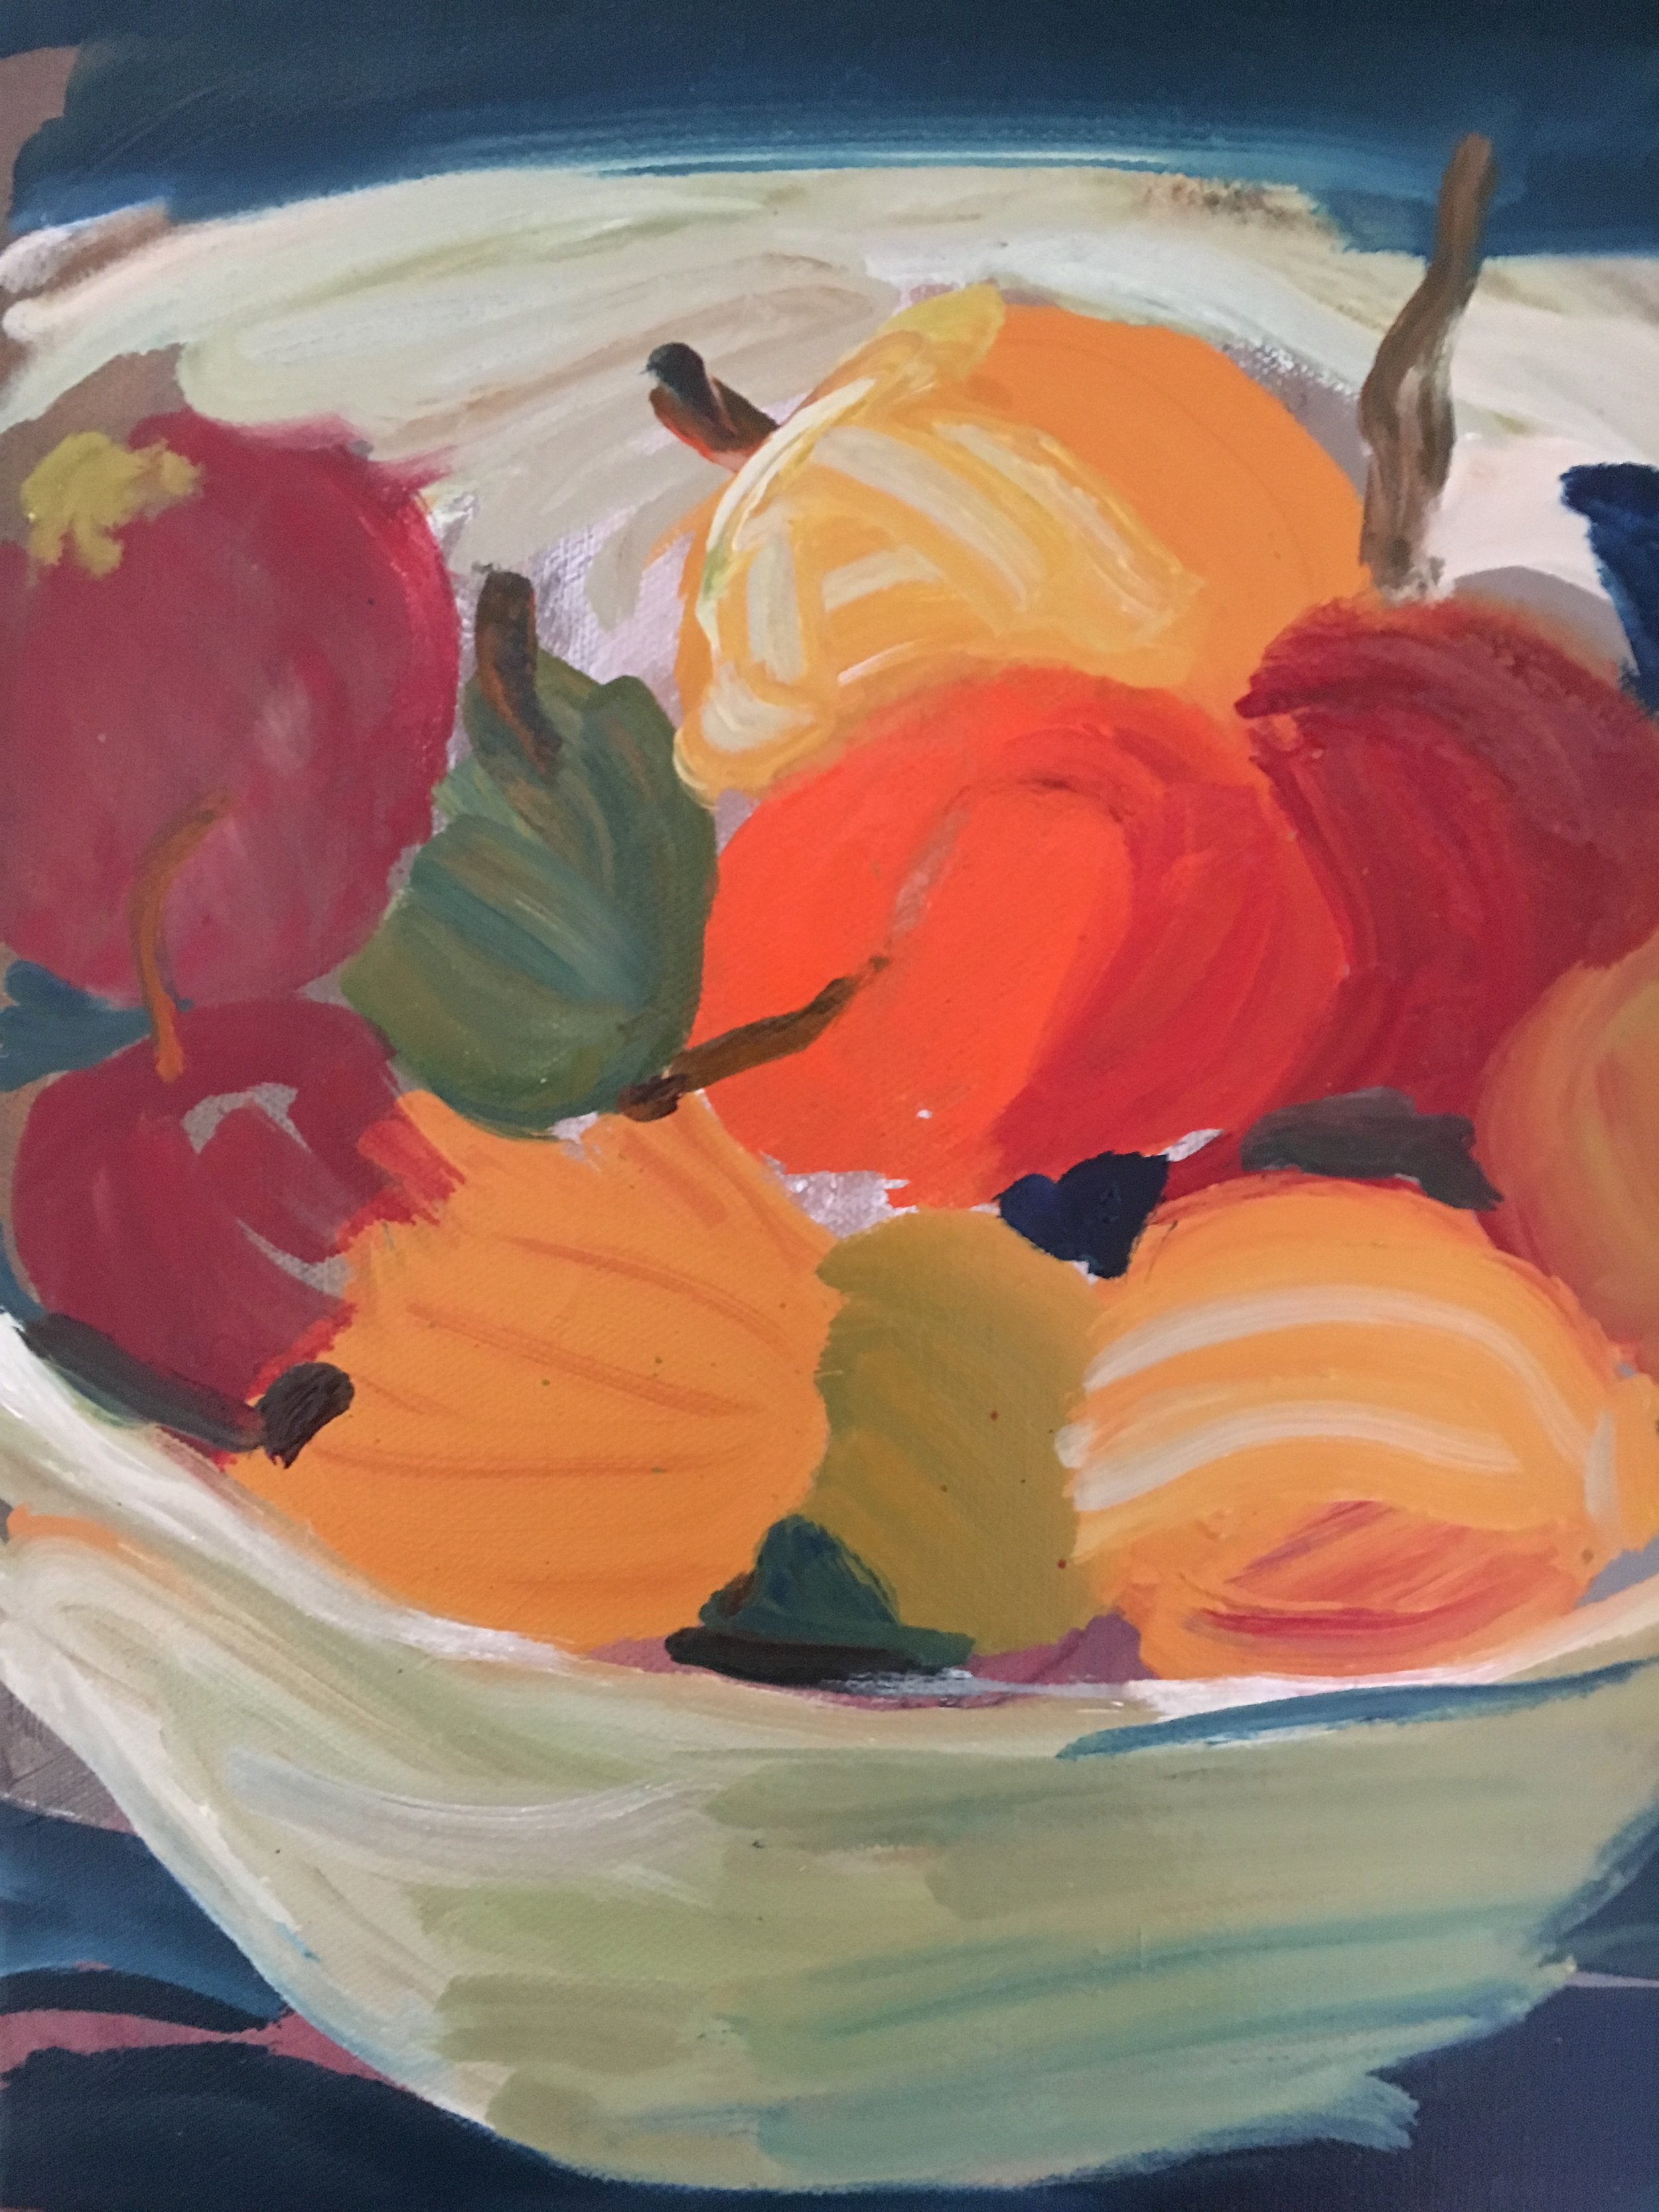 fruit, 2018 15 cm x 20 cm oil on canvas